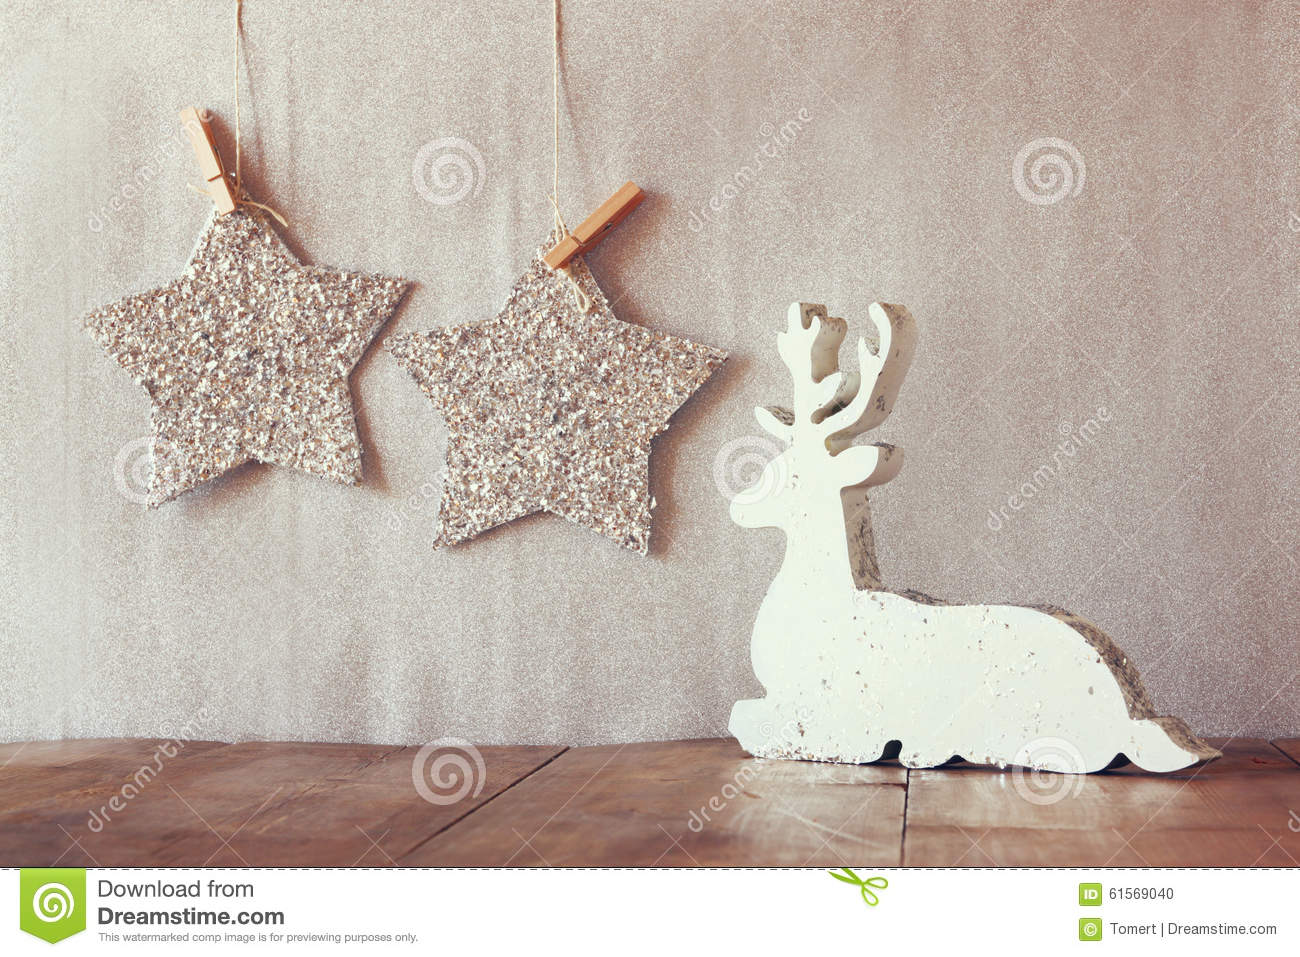 Abstract Image Of White Wooden Reindeer And Glitter Stars Hanging On